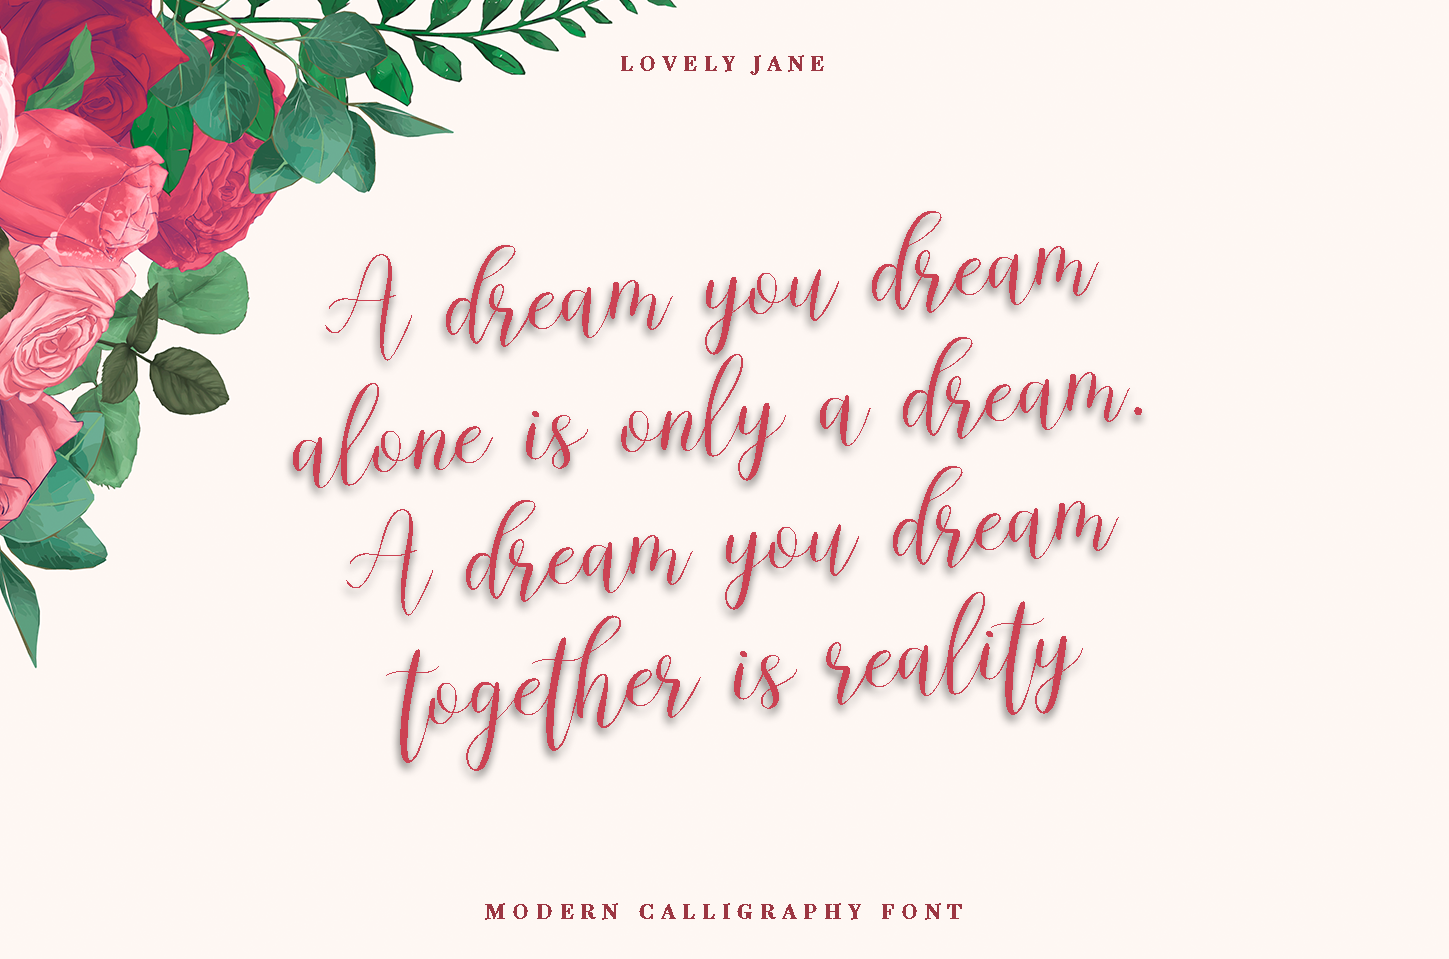 lovely Jane - Modern calligraphy font example image 2